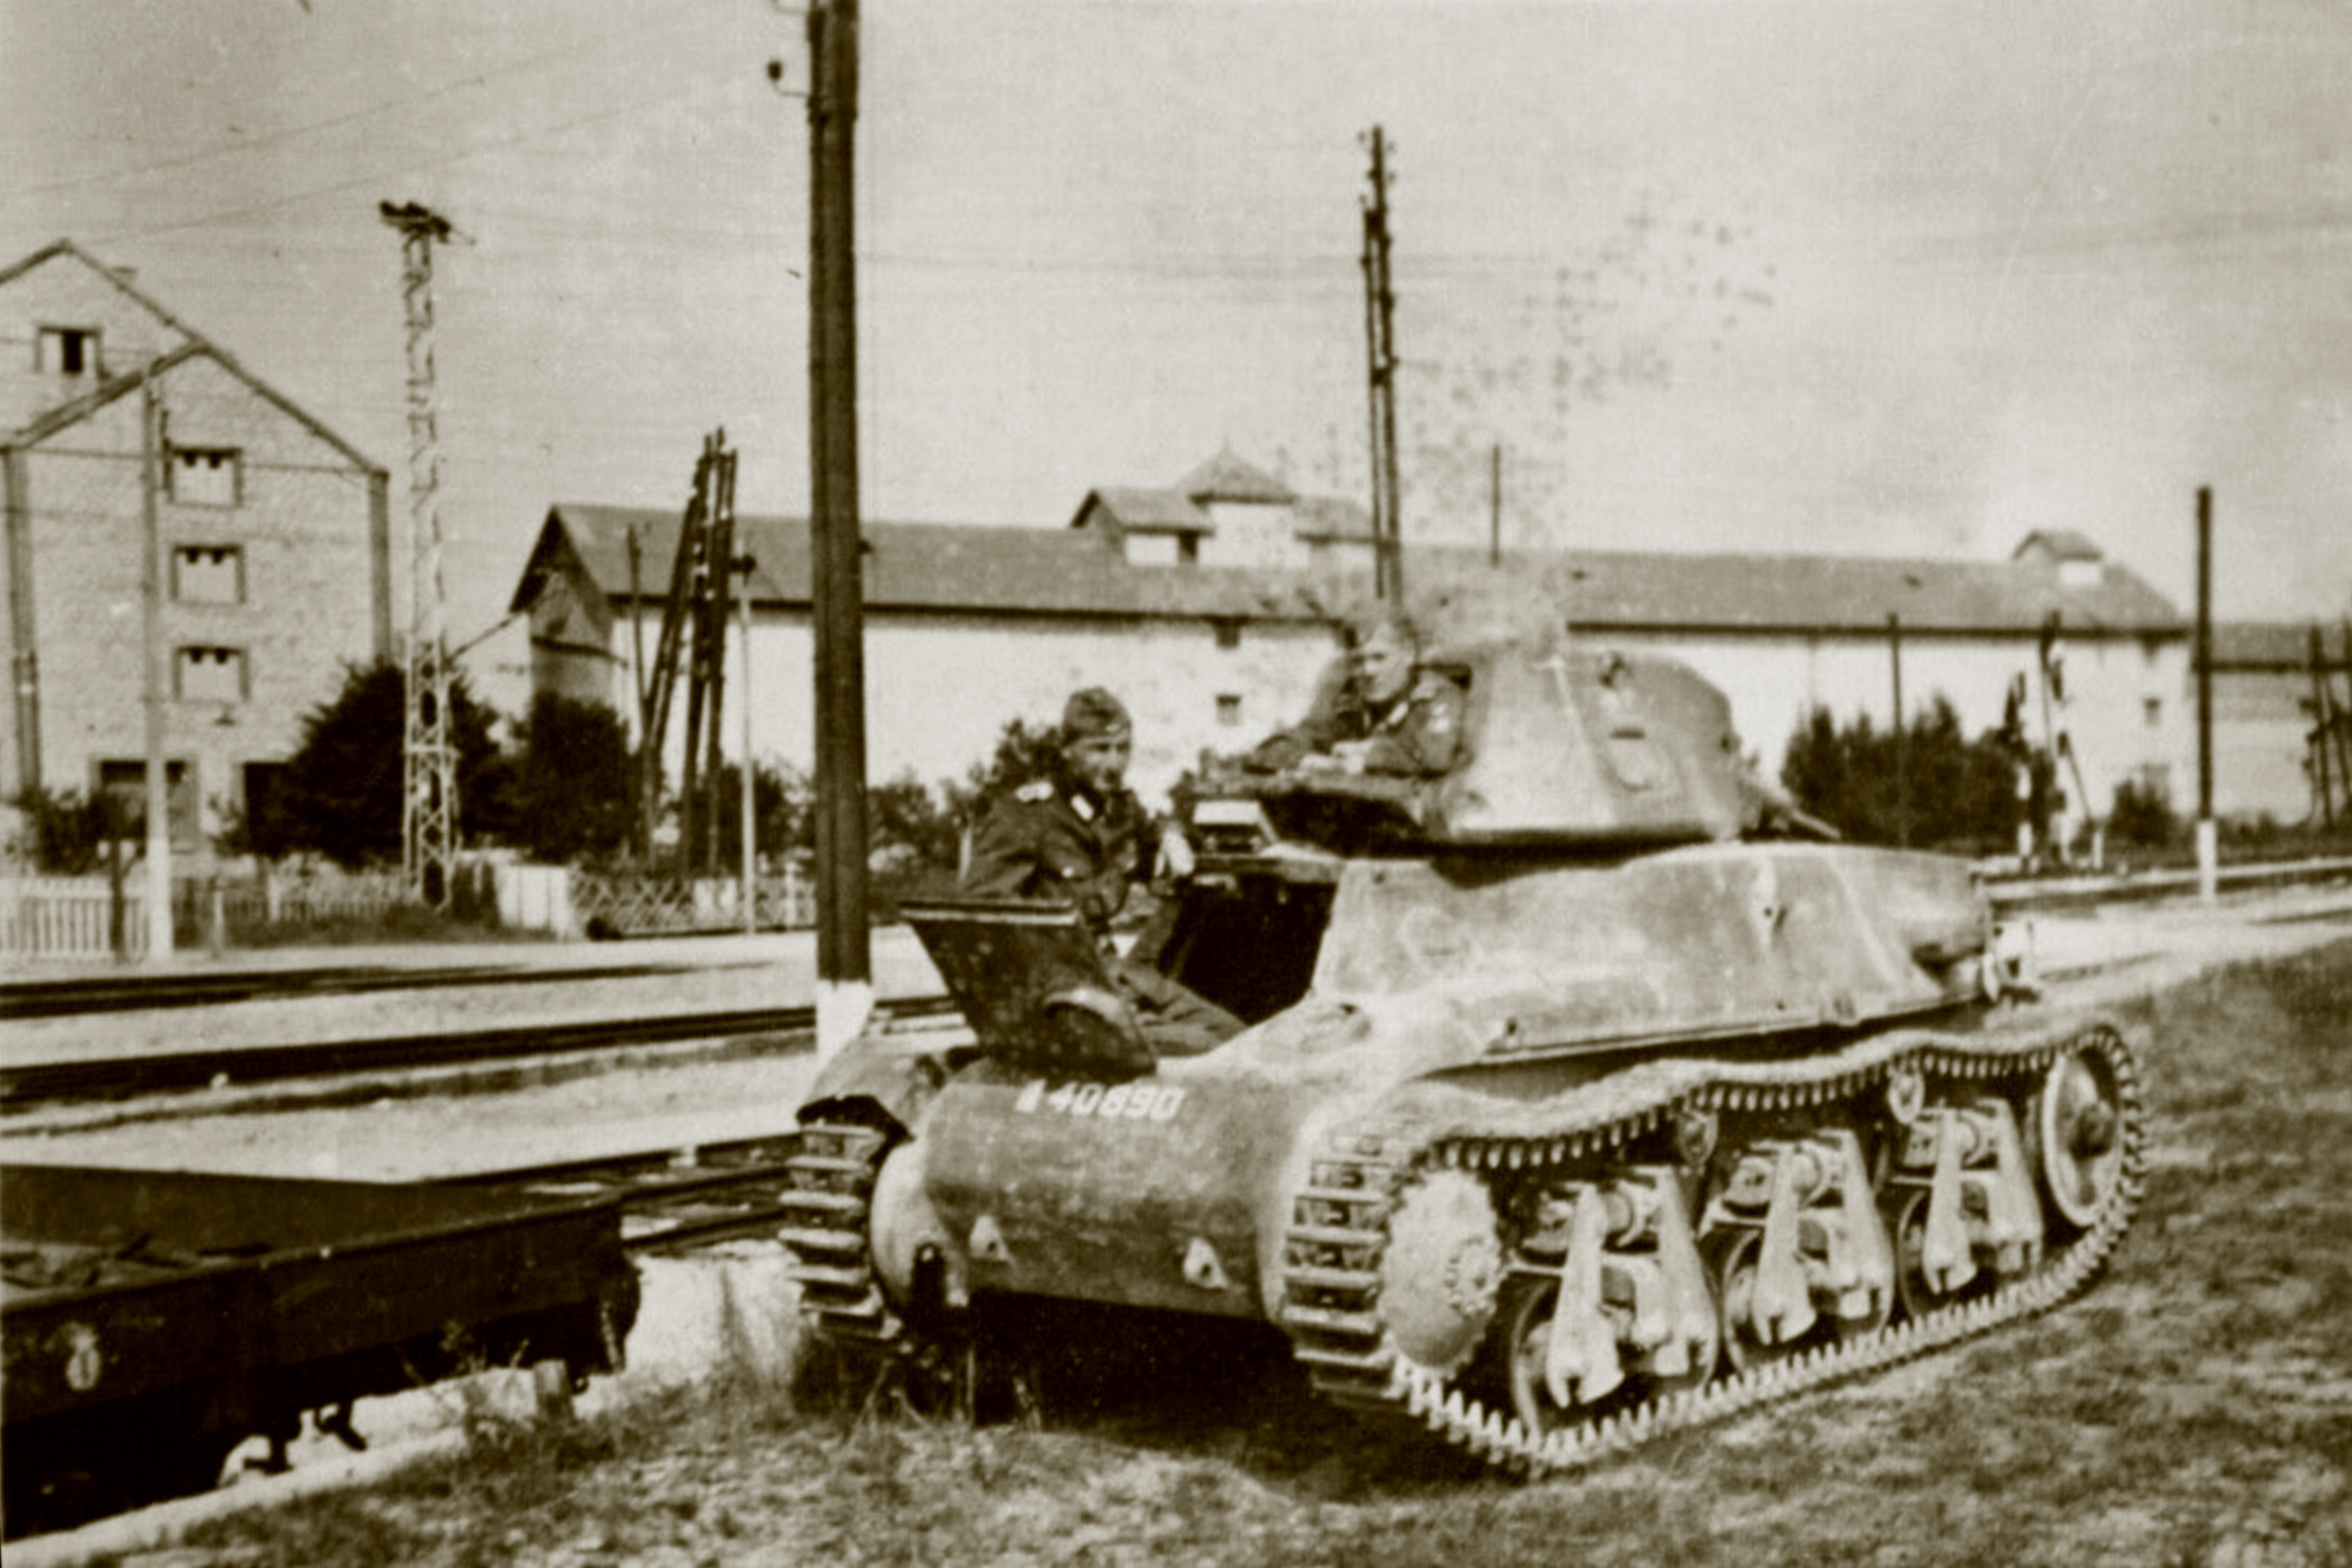 French Army Hotchkiss H35 40890 abandoned near a French railroad station battle of France 1940 ebay 01